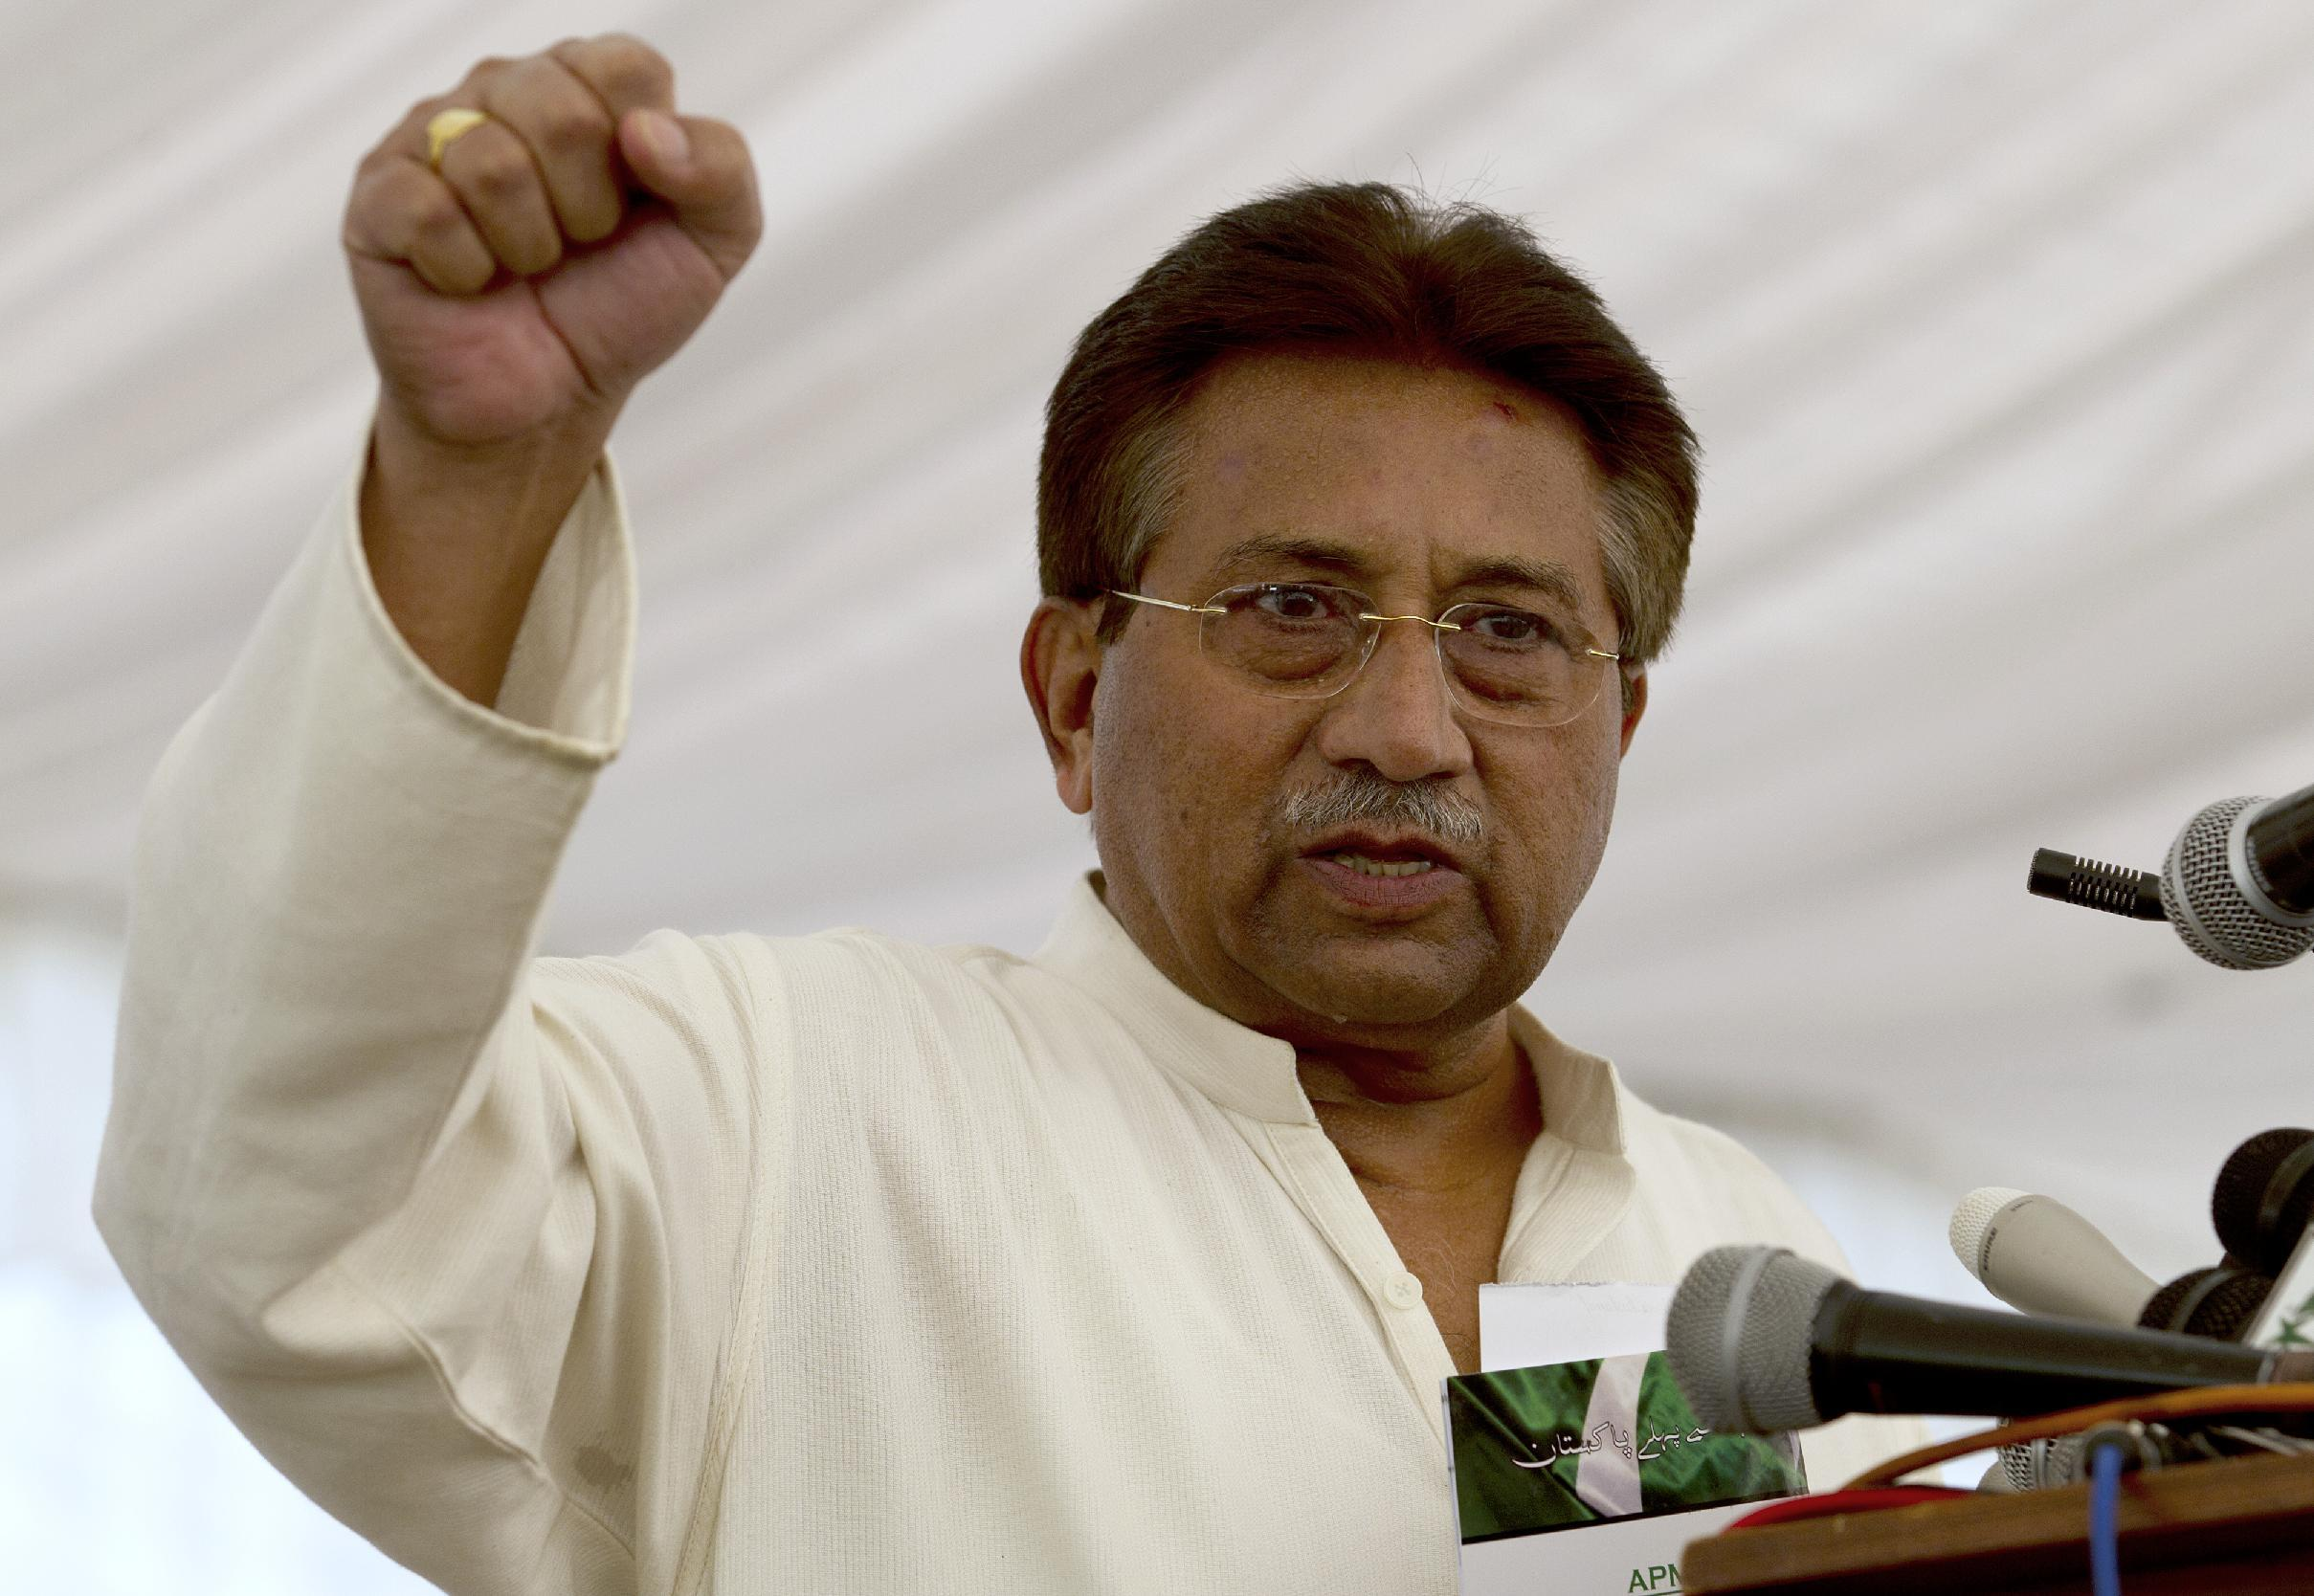 FILE -- In this Monday, April 15, 2013 file photo, Pakistan's former President and military ruler Pervez Musharraf addresses his party supporters at his house in Islamabad, Pakistan. A lawyer representing Pakistan's former President Pervez Musharraf says he has been granted bail in a case involving the death of a separatist leader. The move paves the way for Musharraf's release as he has been granted bail in other cases against him as well. (AP Photo/B.K. Bangash, File)